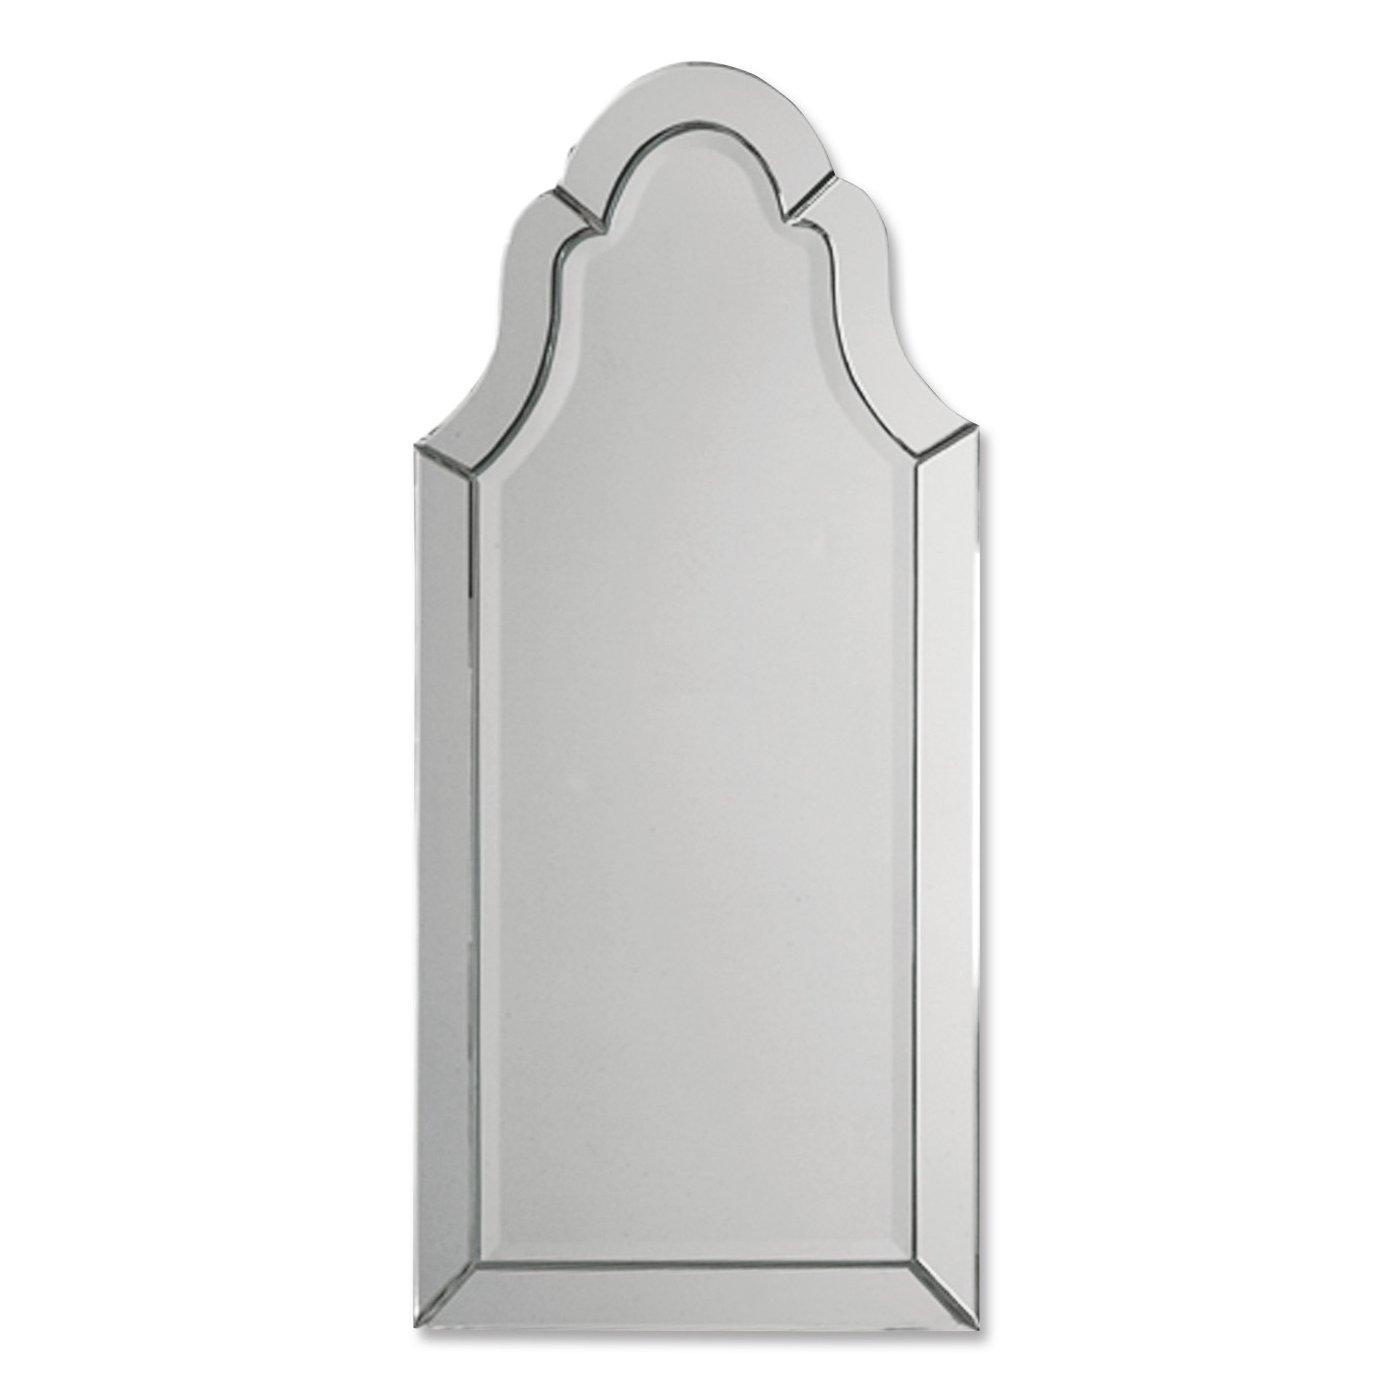 Uttermost 11912 B Hovan Frameless Arched Wall Mirror | Ebay For Frameless Arched Mirror (Photo 4 of 20)